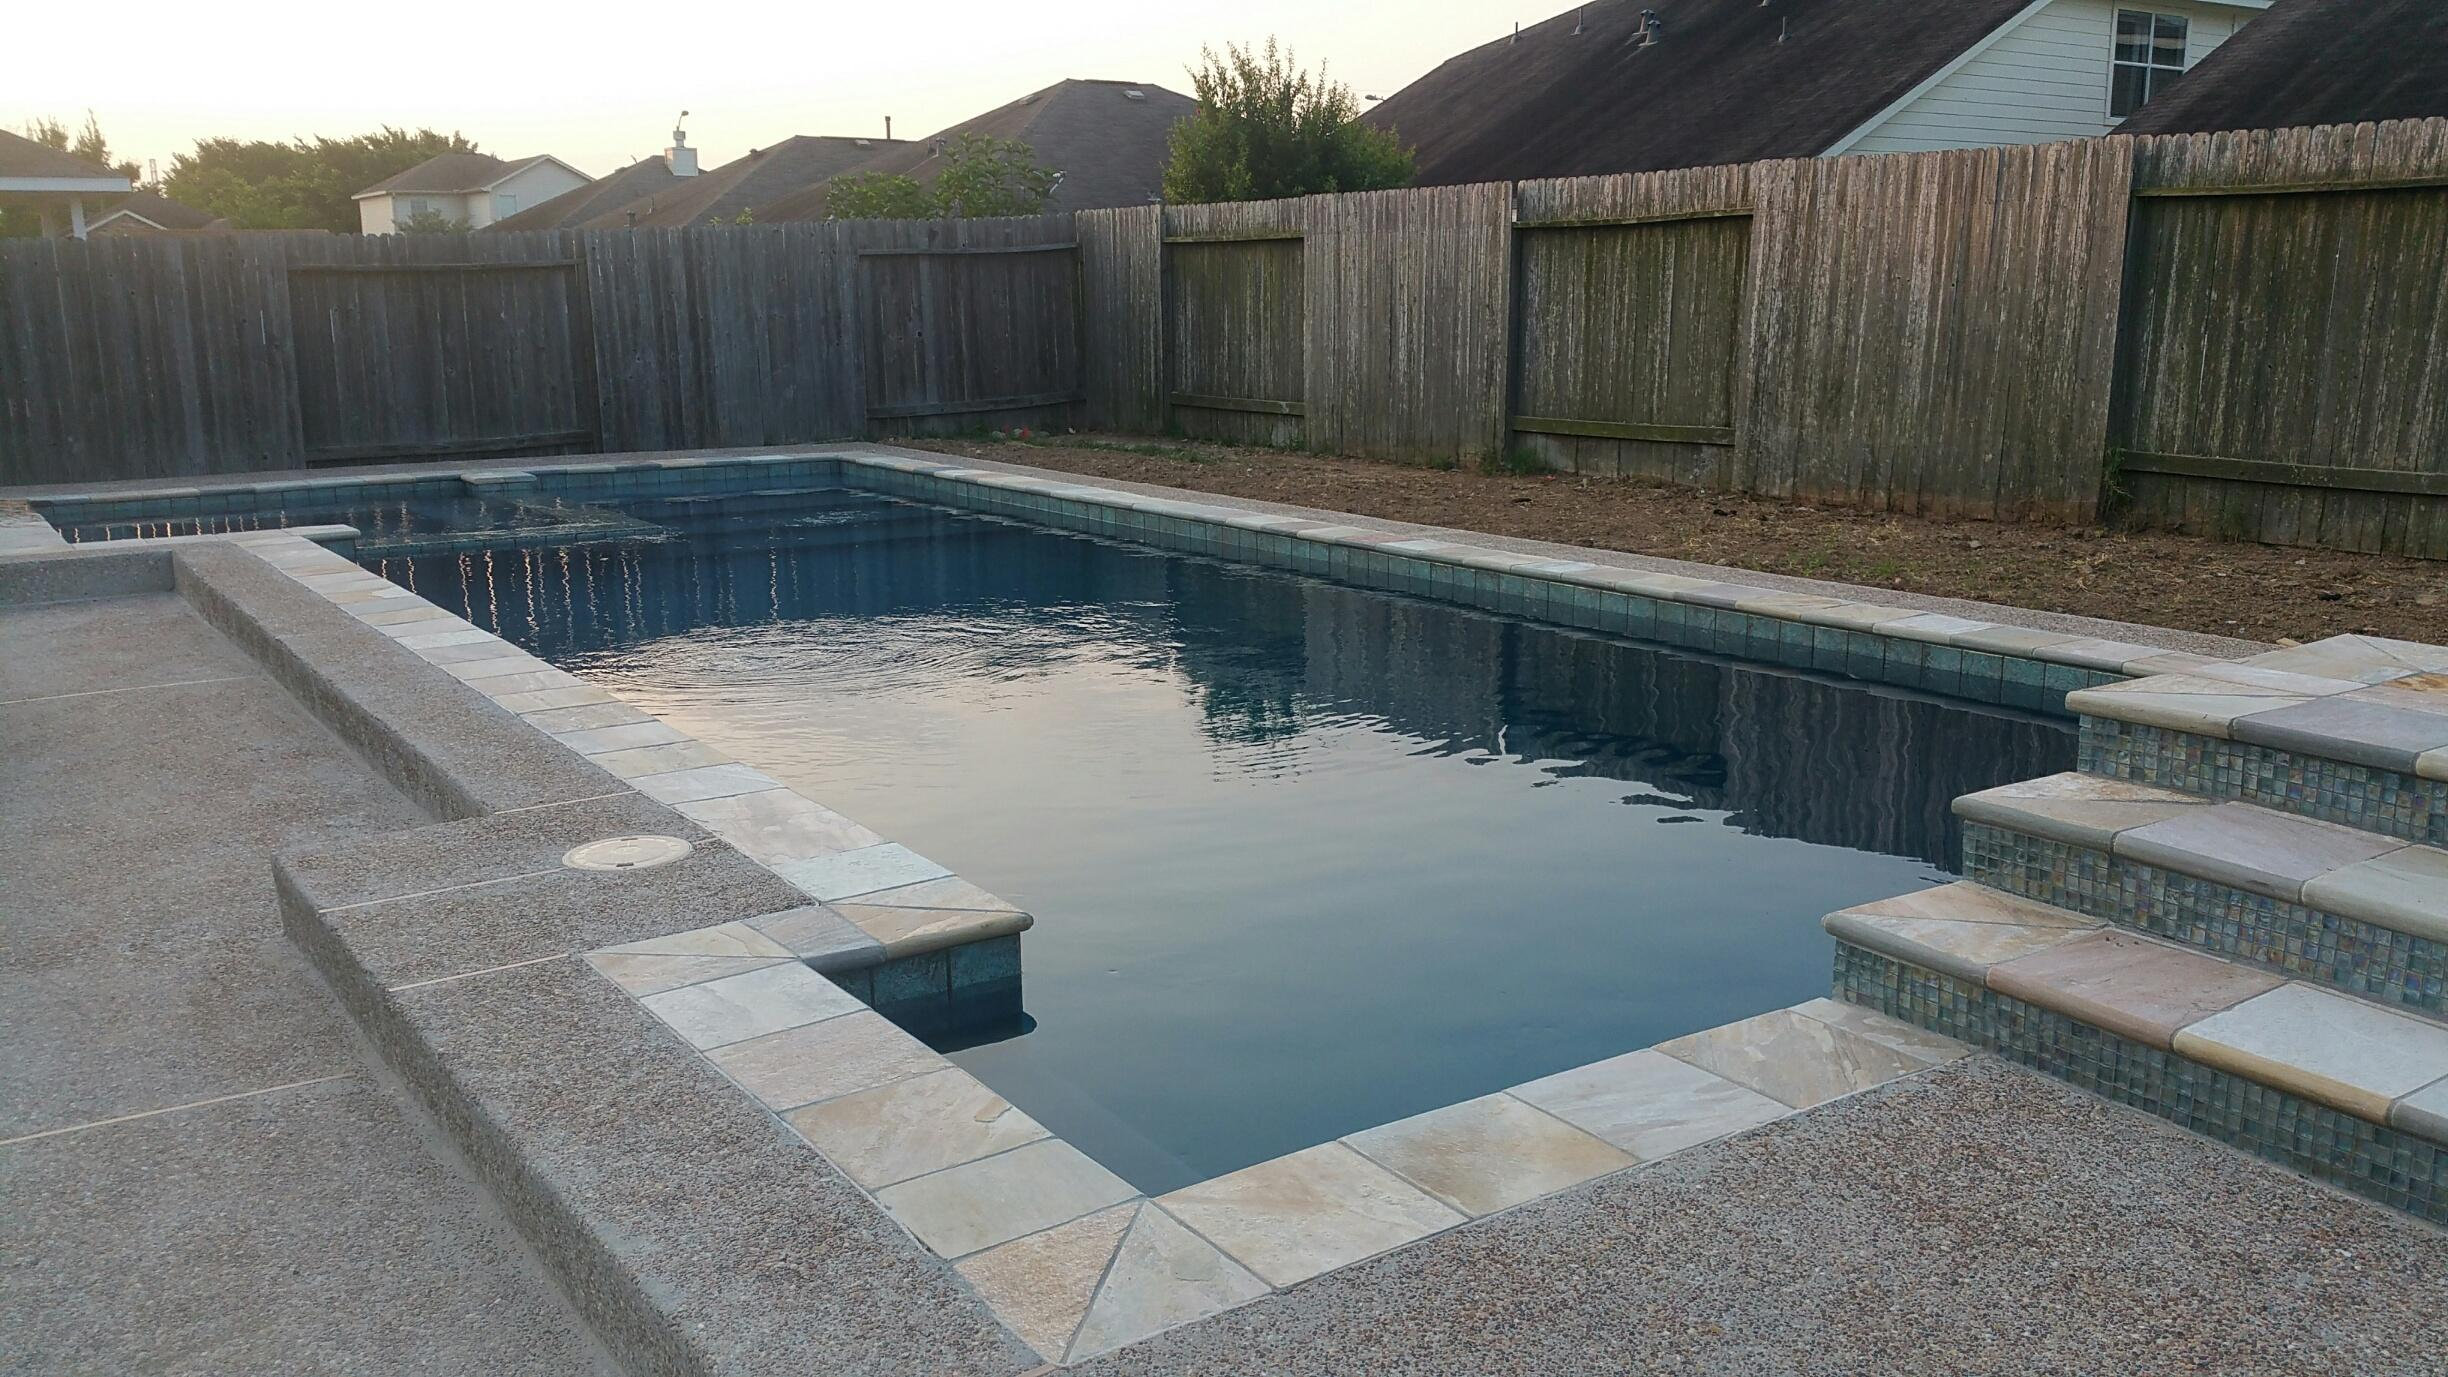 Aquascapes Pools And Spas Swimming Pool Contractor Aquascapes Llc Pools And Spas